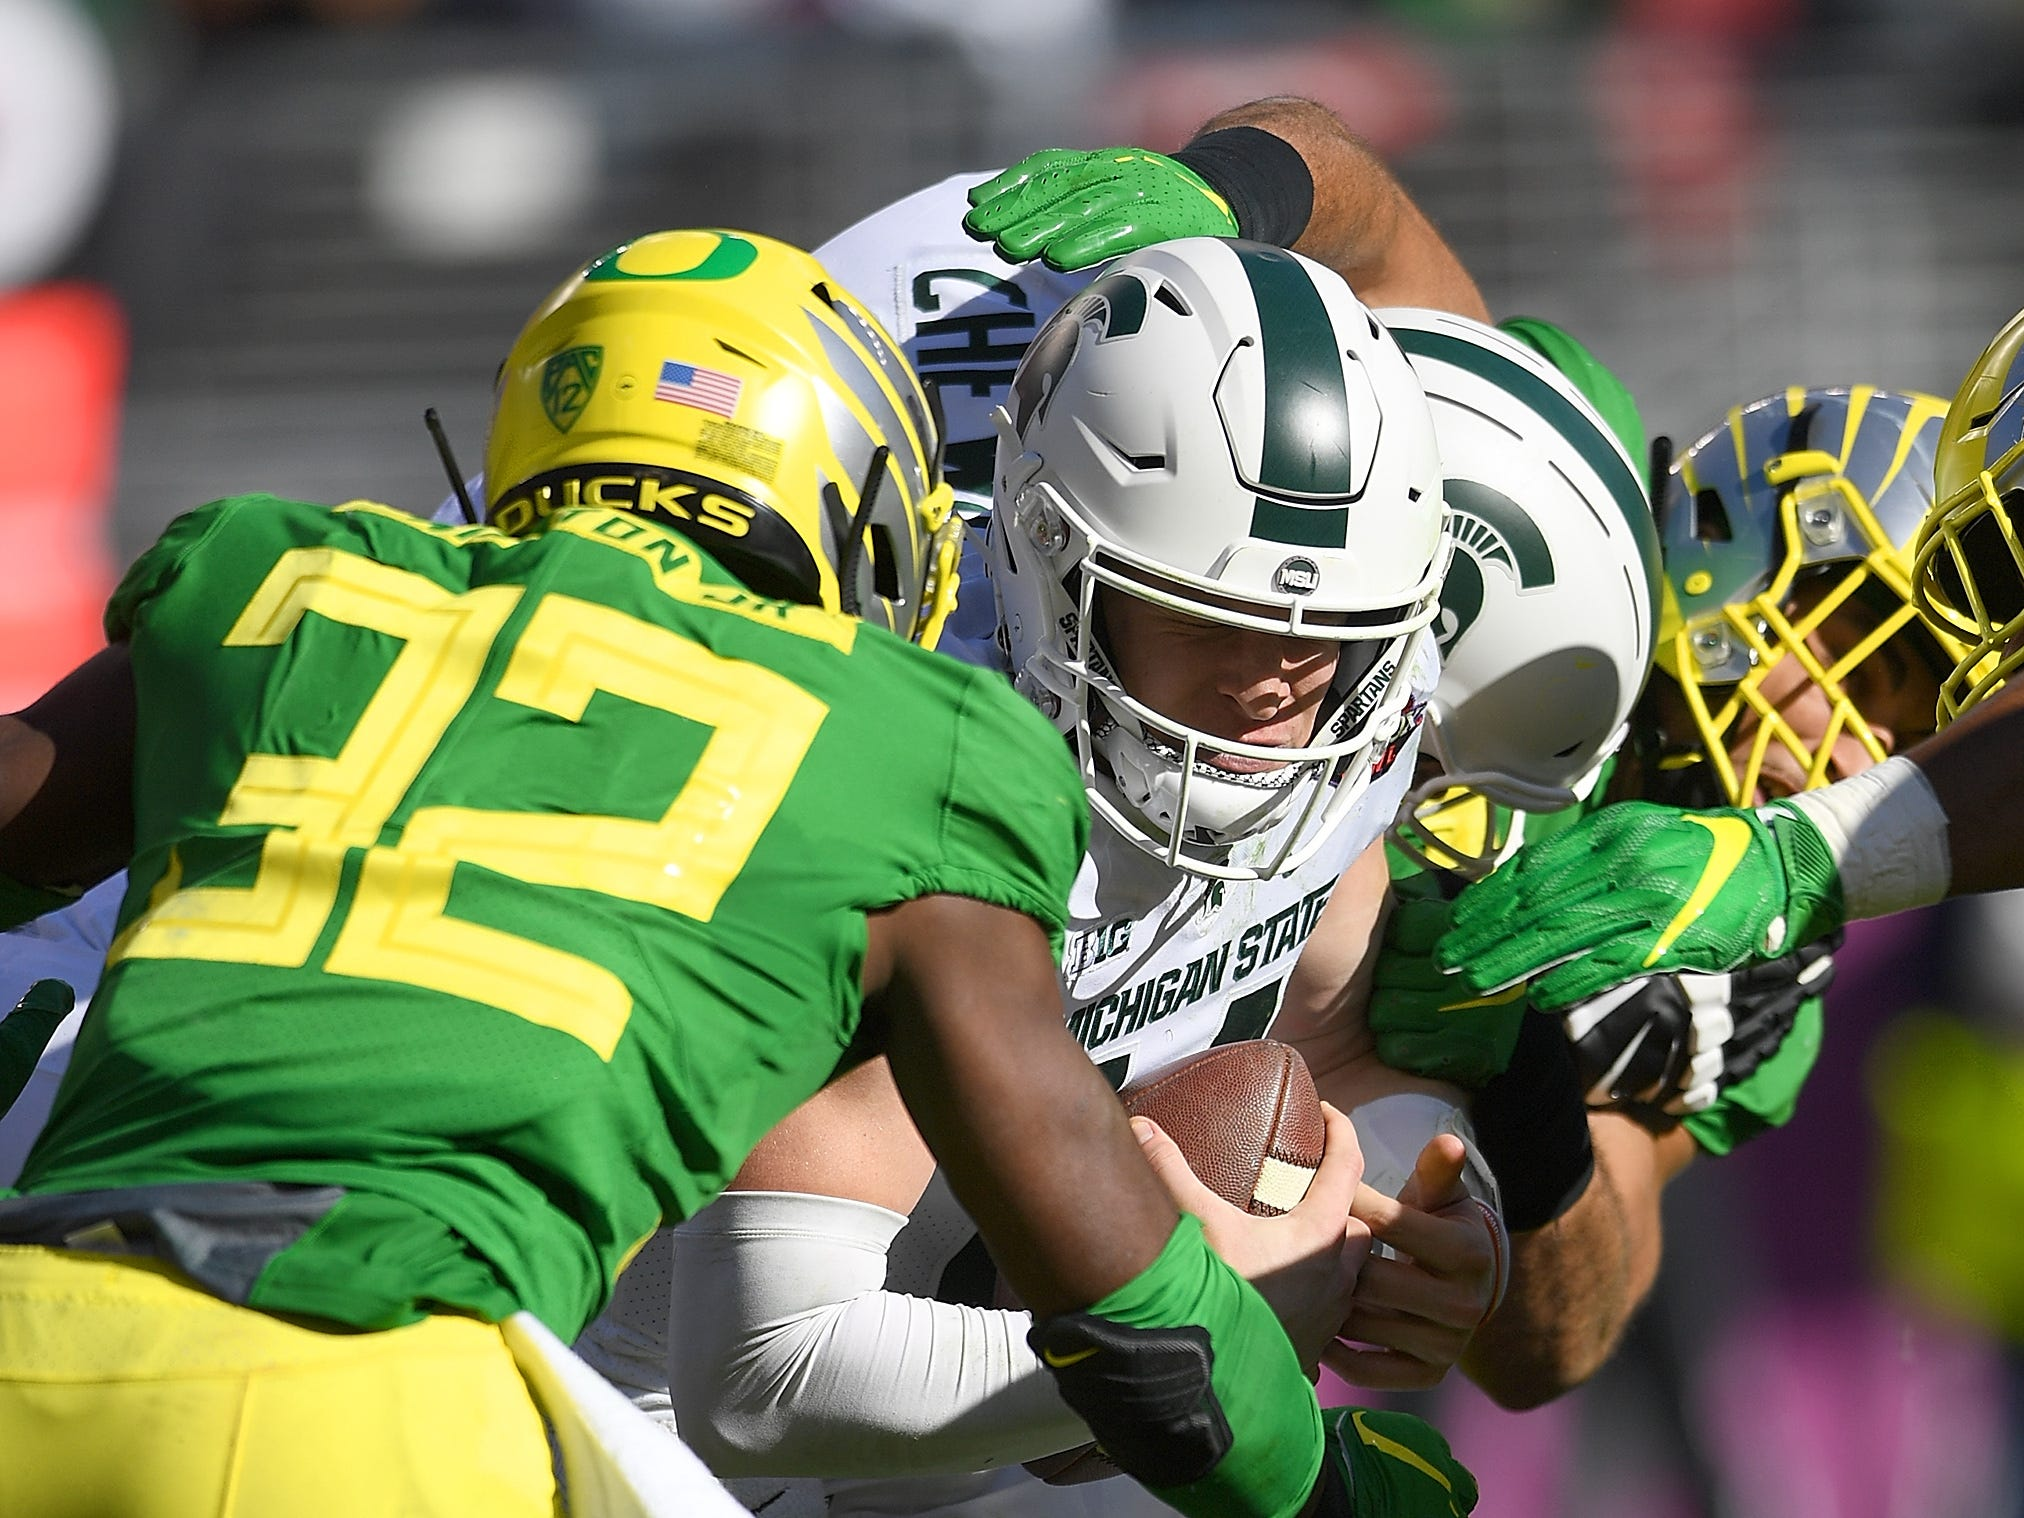 Brian Lewerke #14 of the Michigan State Spartans gets sacked by La'Mar Winston Jr. #32 of the Oregon Ducks during the first half of the Redbox Bowl at Levi's Stadium on December 31, 2018 in Santa Clara, California.